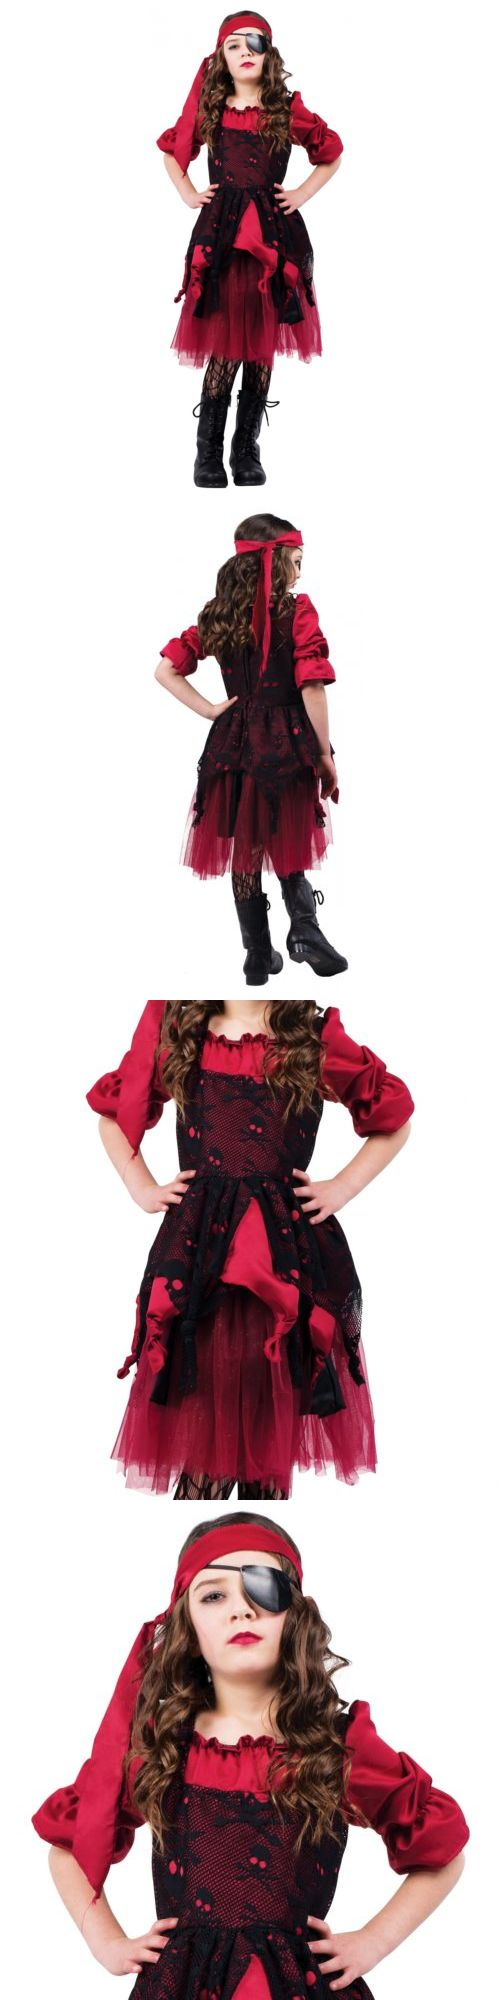 Halloween Costumes Kids: Pirate Costume Kids Halloween Fancy Dress -> BUY IT NOW ONLY: $41.09 on eBay!